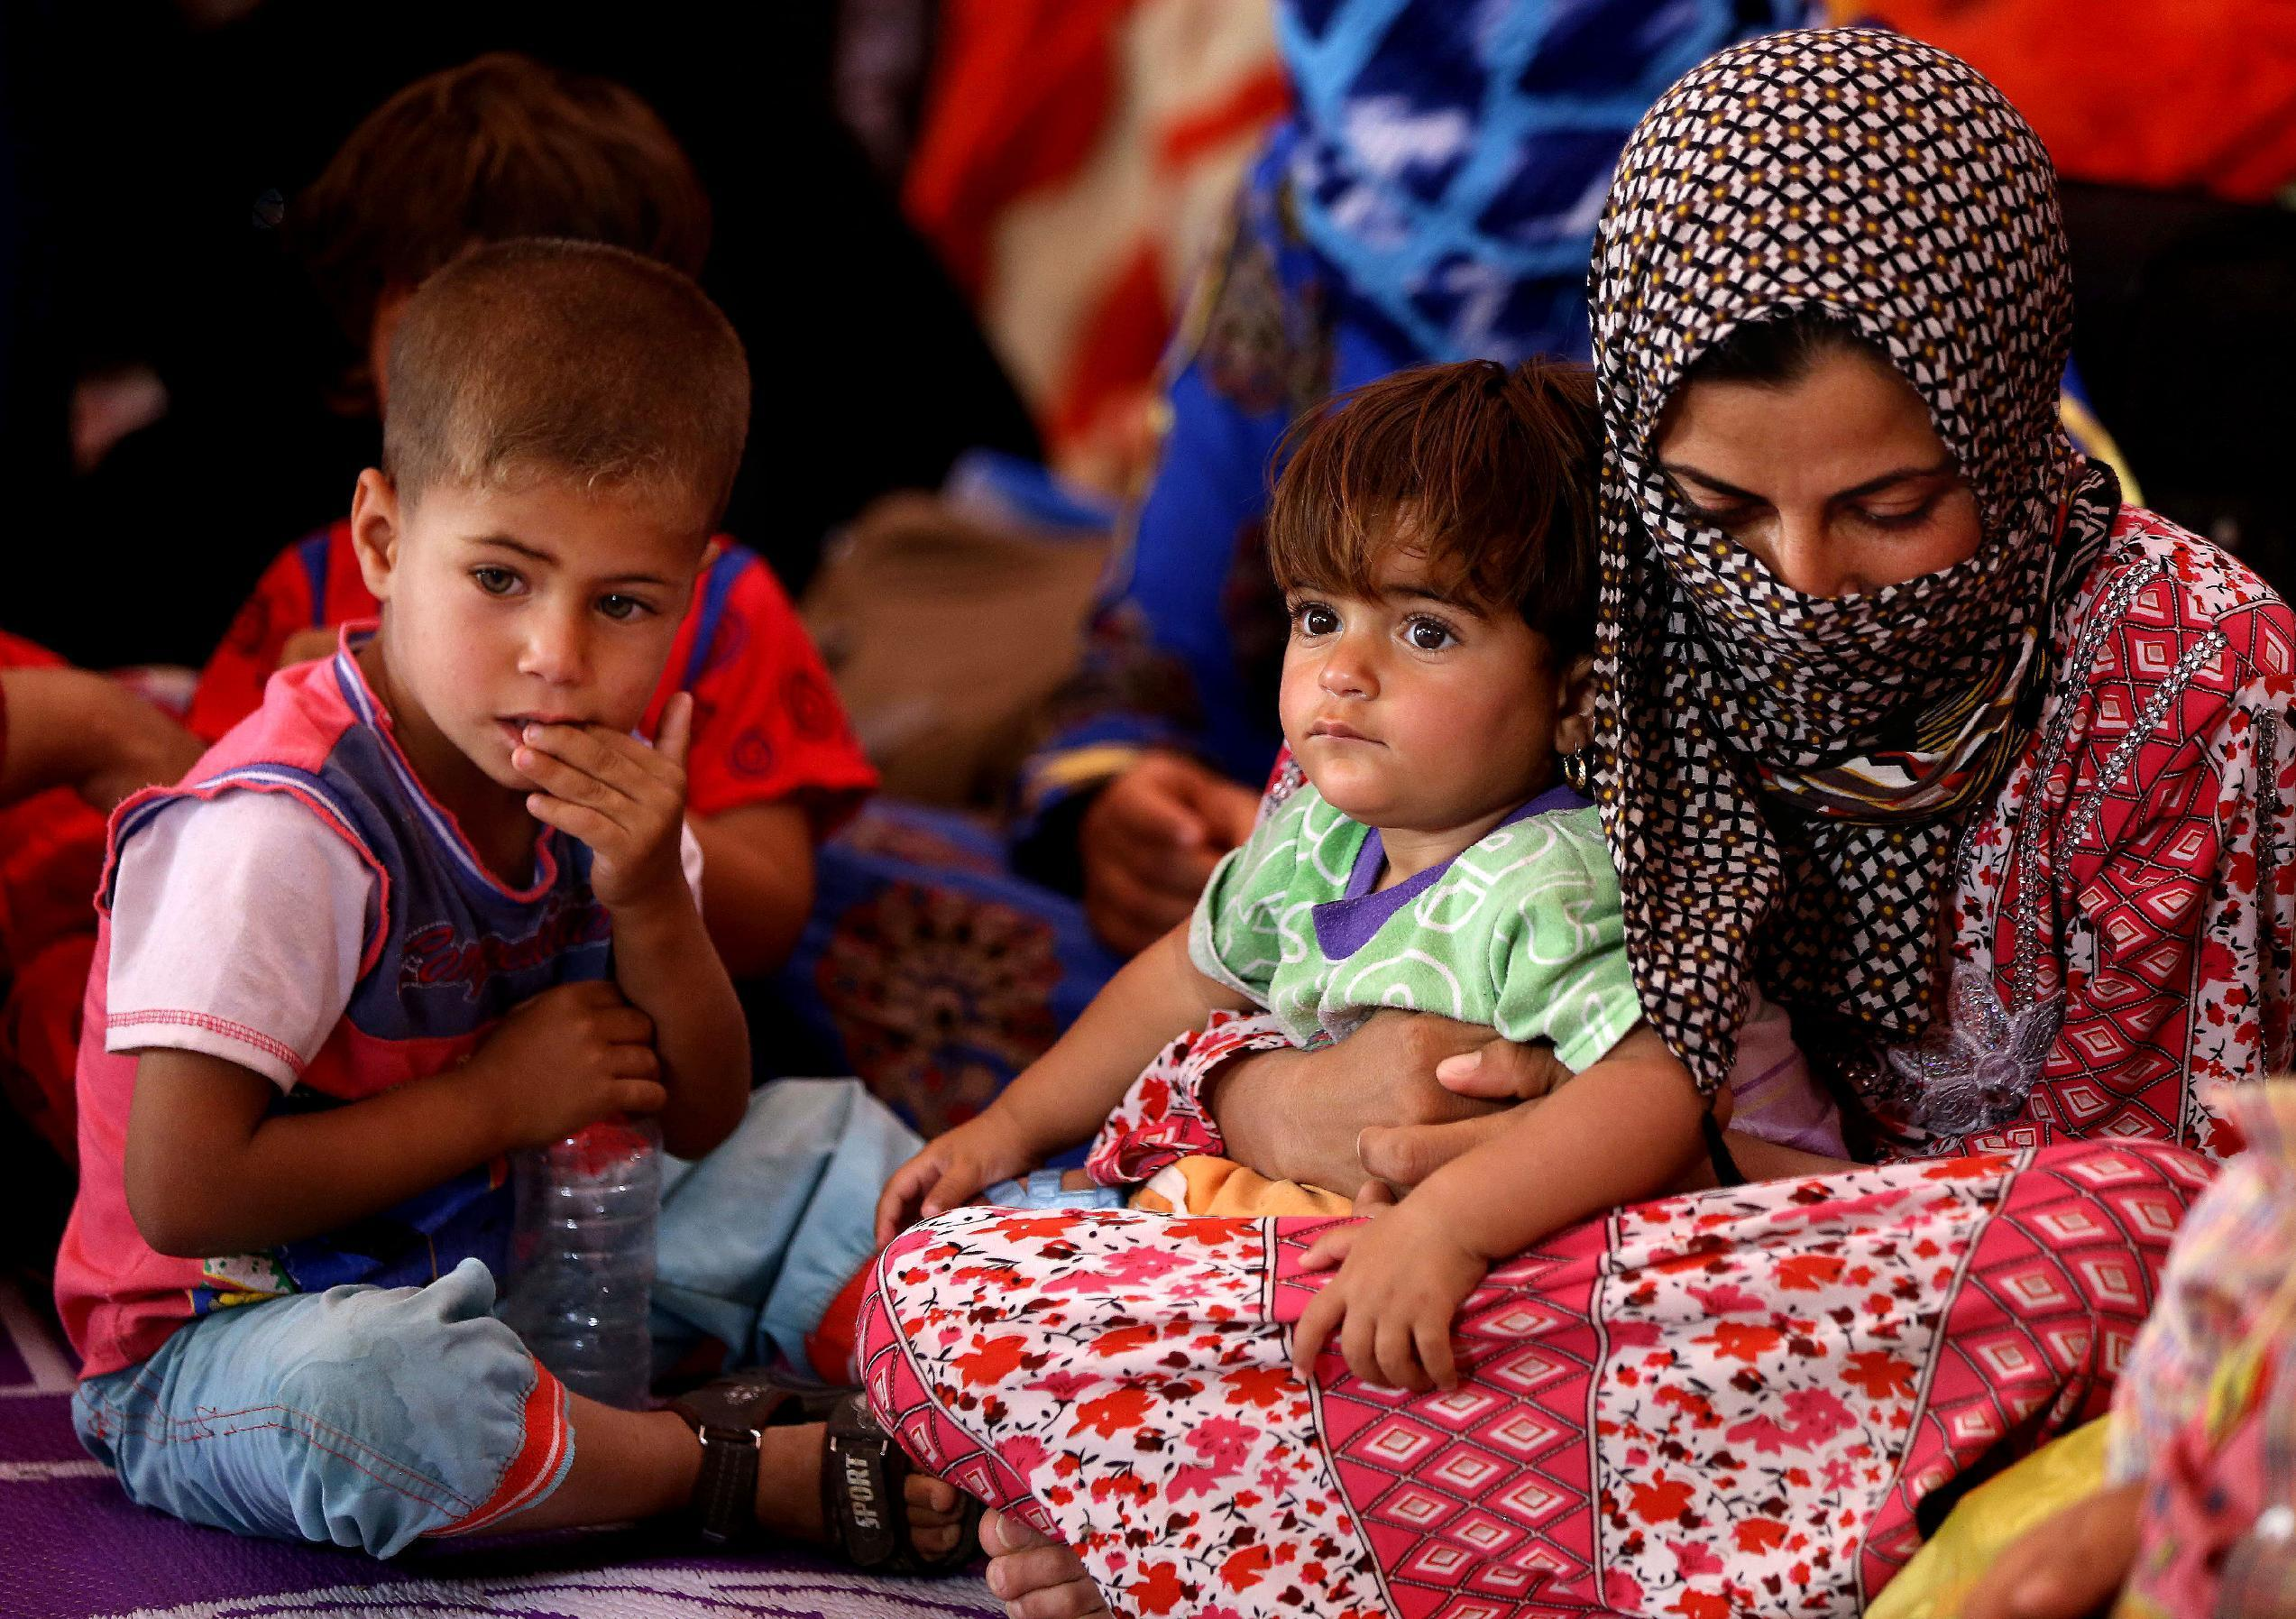 Report: 2.2 million Iraqis displaced by Islamic State group